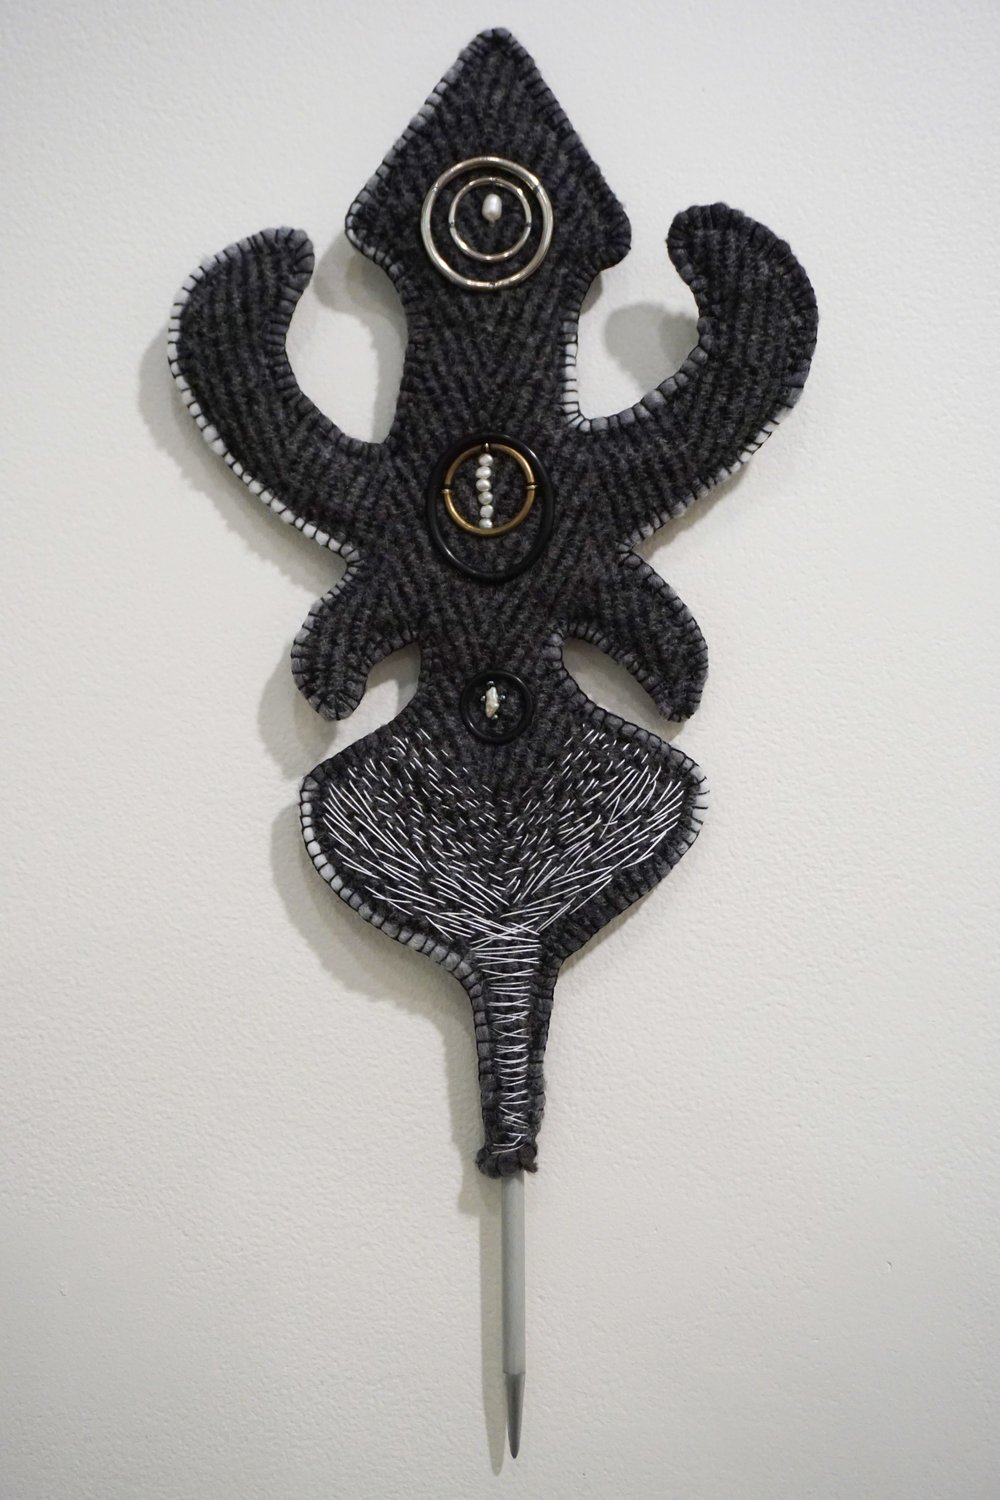 35. Katrina Virgona,  Margherita,  Knitting needle, blanket, found objects, glass beads and pearls $275